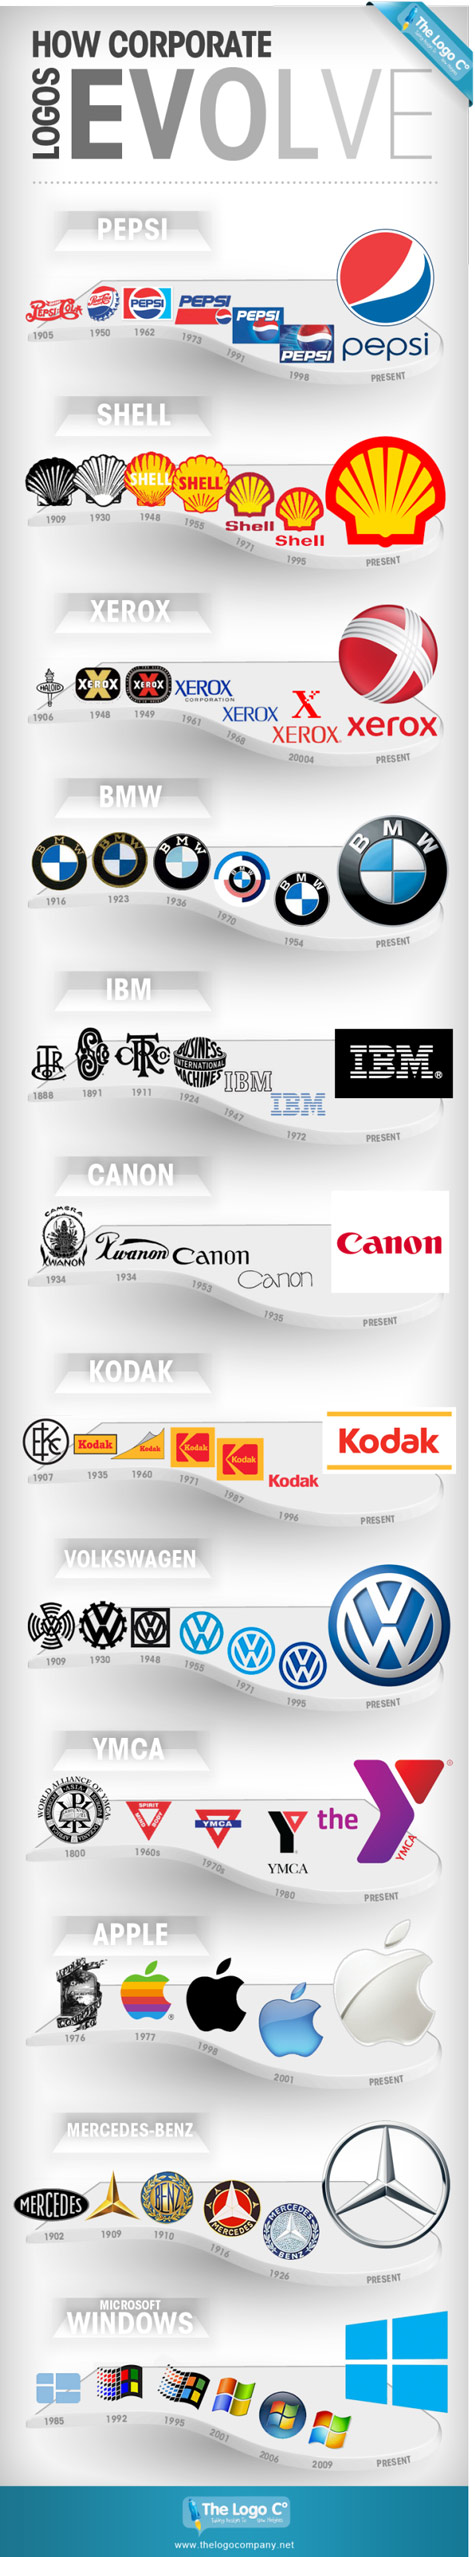 infographic how corporate logos evolve 475